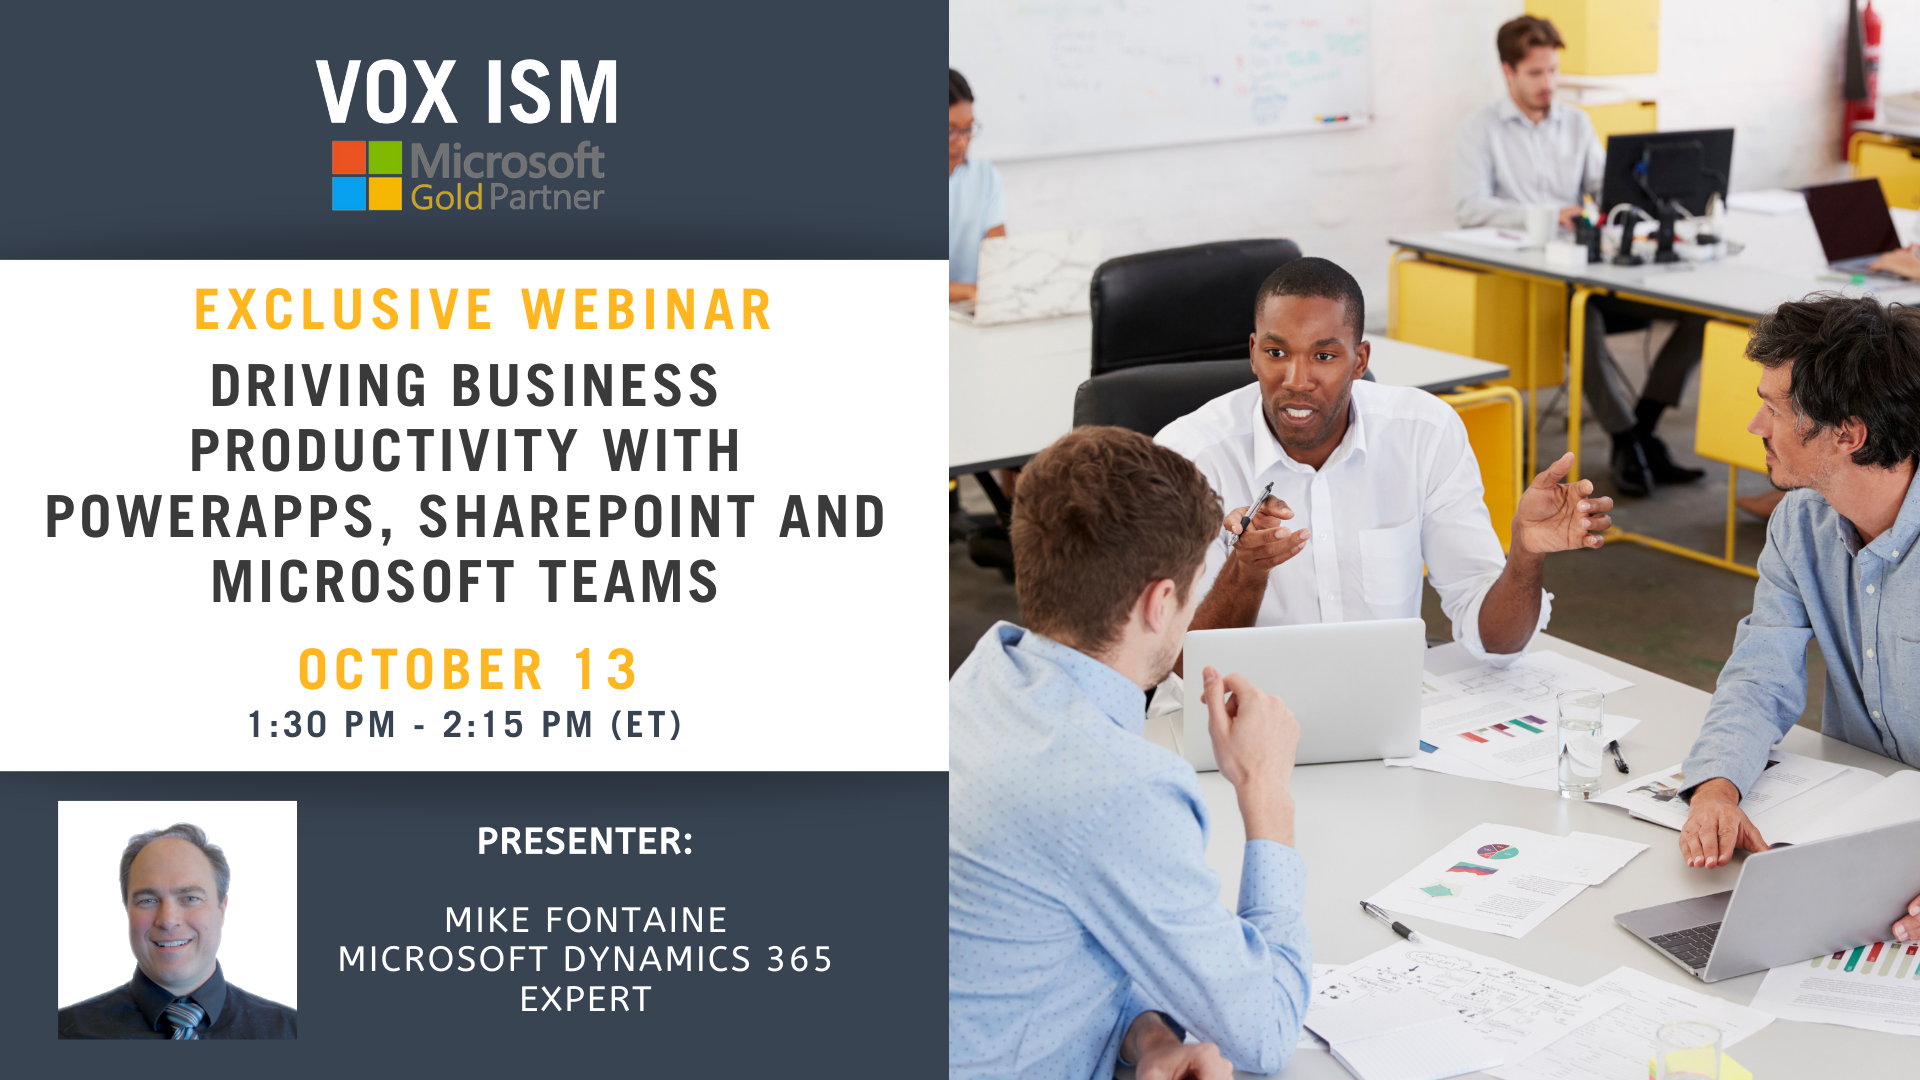 Driving business productivity with PowerApps, Microsoft Teams and SharePoint - October 13 – Webinar